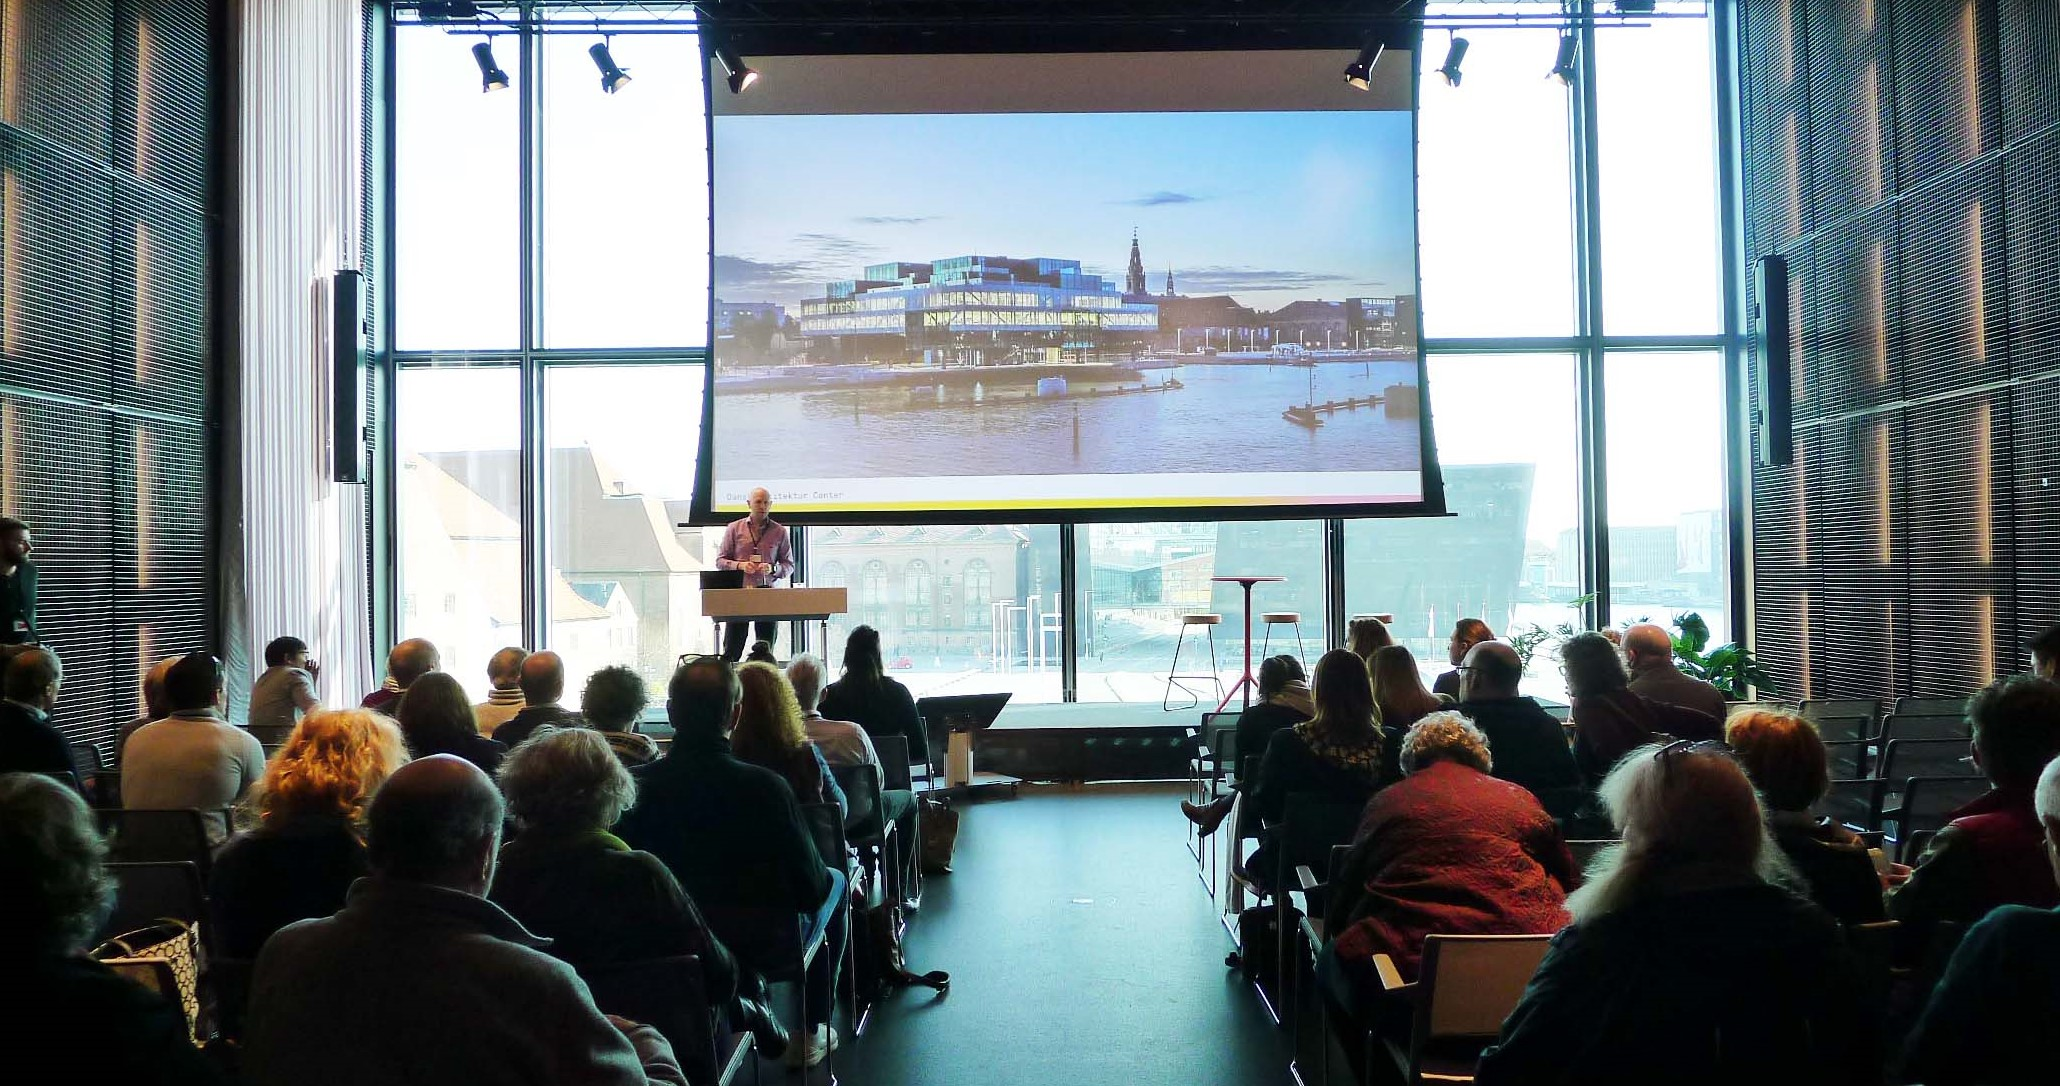 OMA's BLOX / The Danish Architectural Centre from the inside, with harbour views… Photo Credit: E Fitzpatrick, AIA